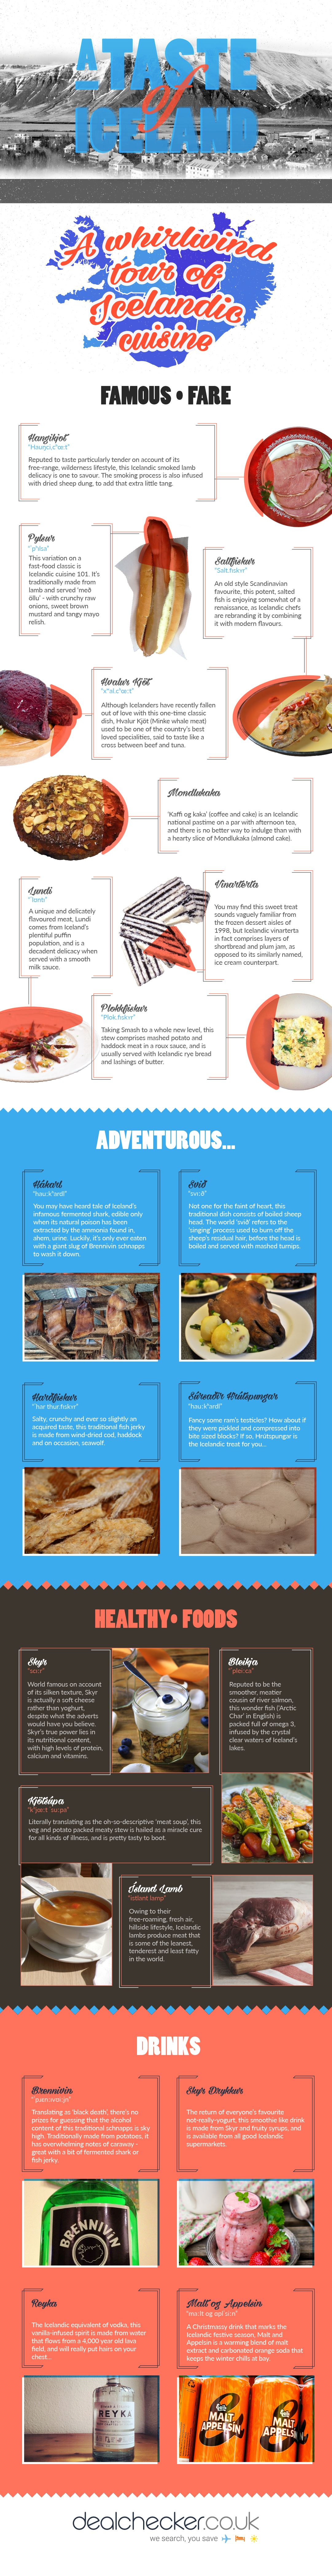 A Guide To The Culinary Masterpieces of Iceland - Infographic